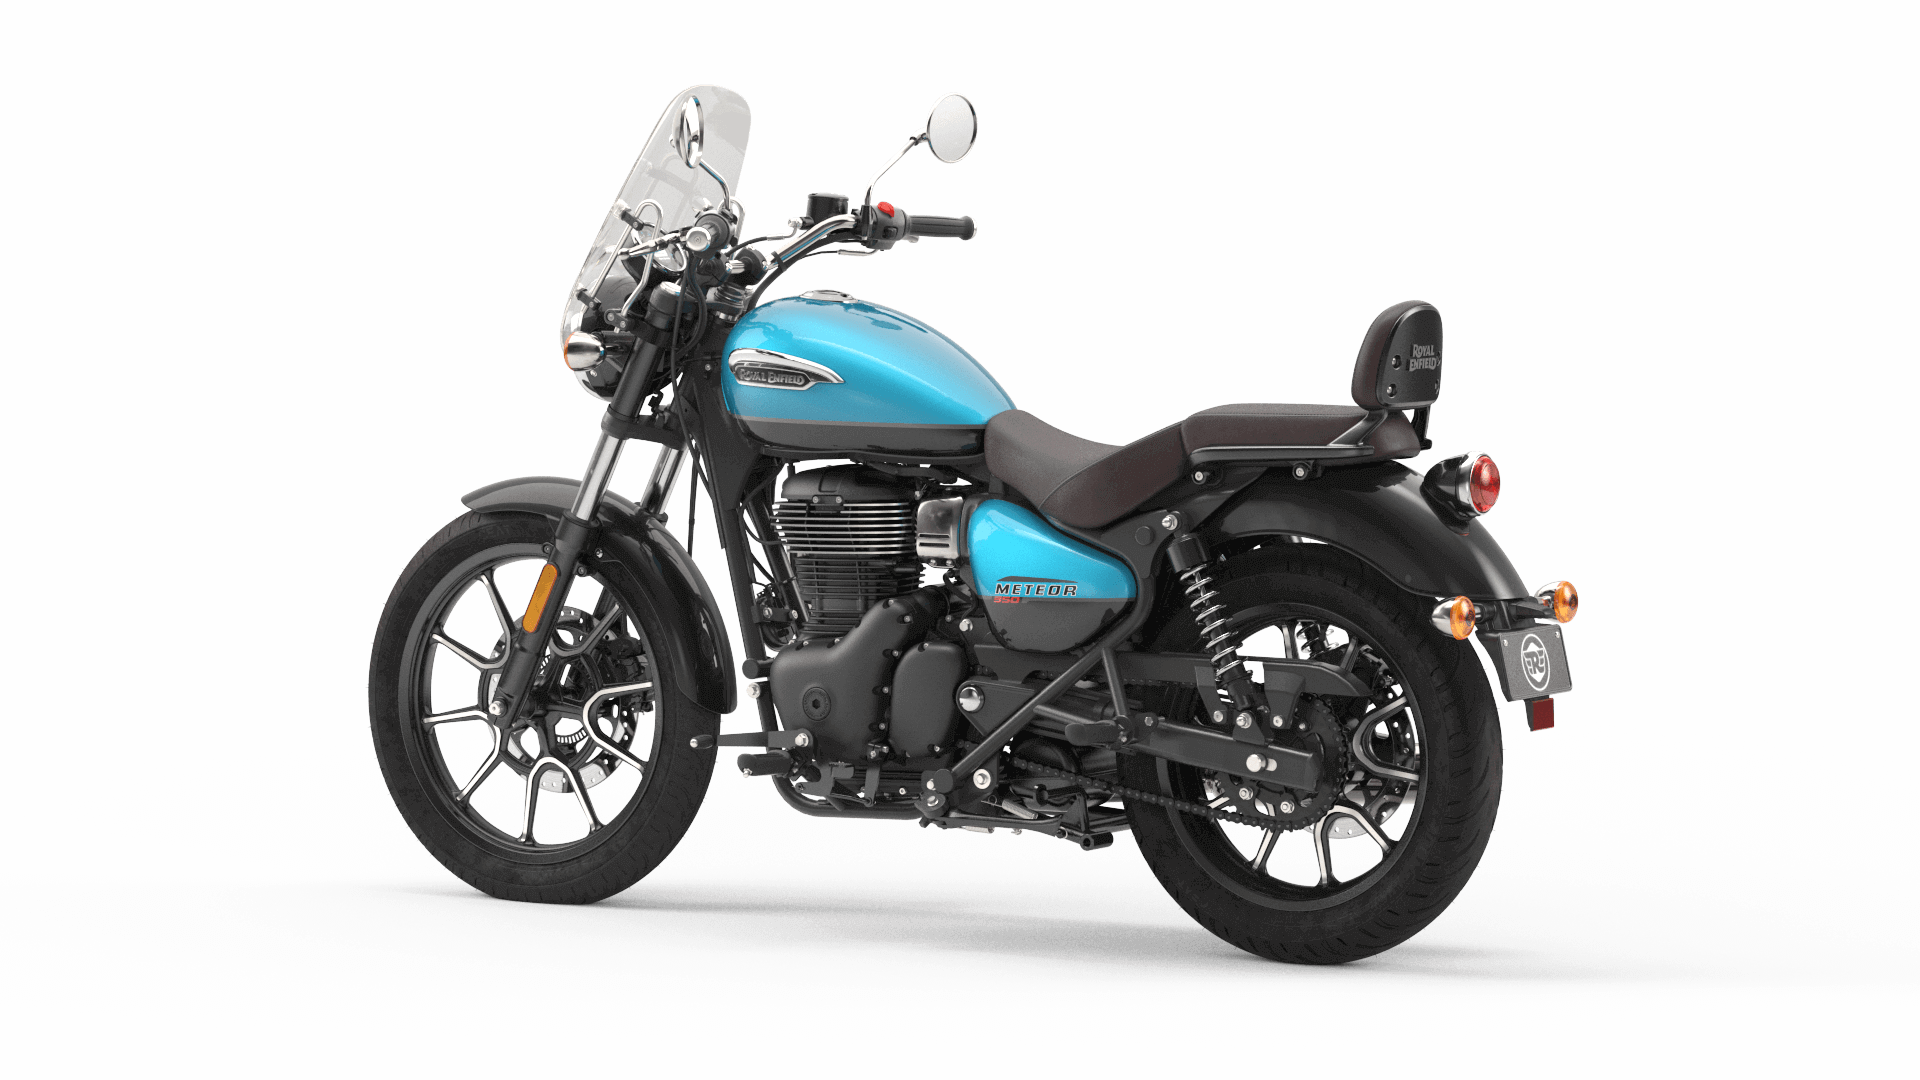 RE Meteor 350 Price, Colours, Images & Mileage in India | Royal Enfield